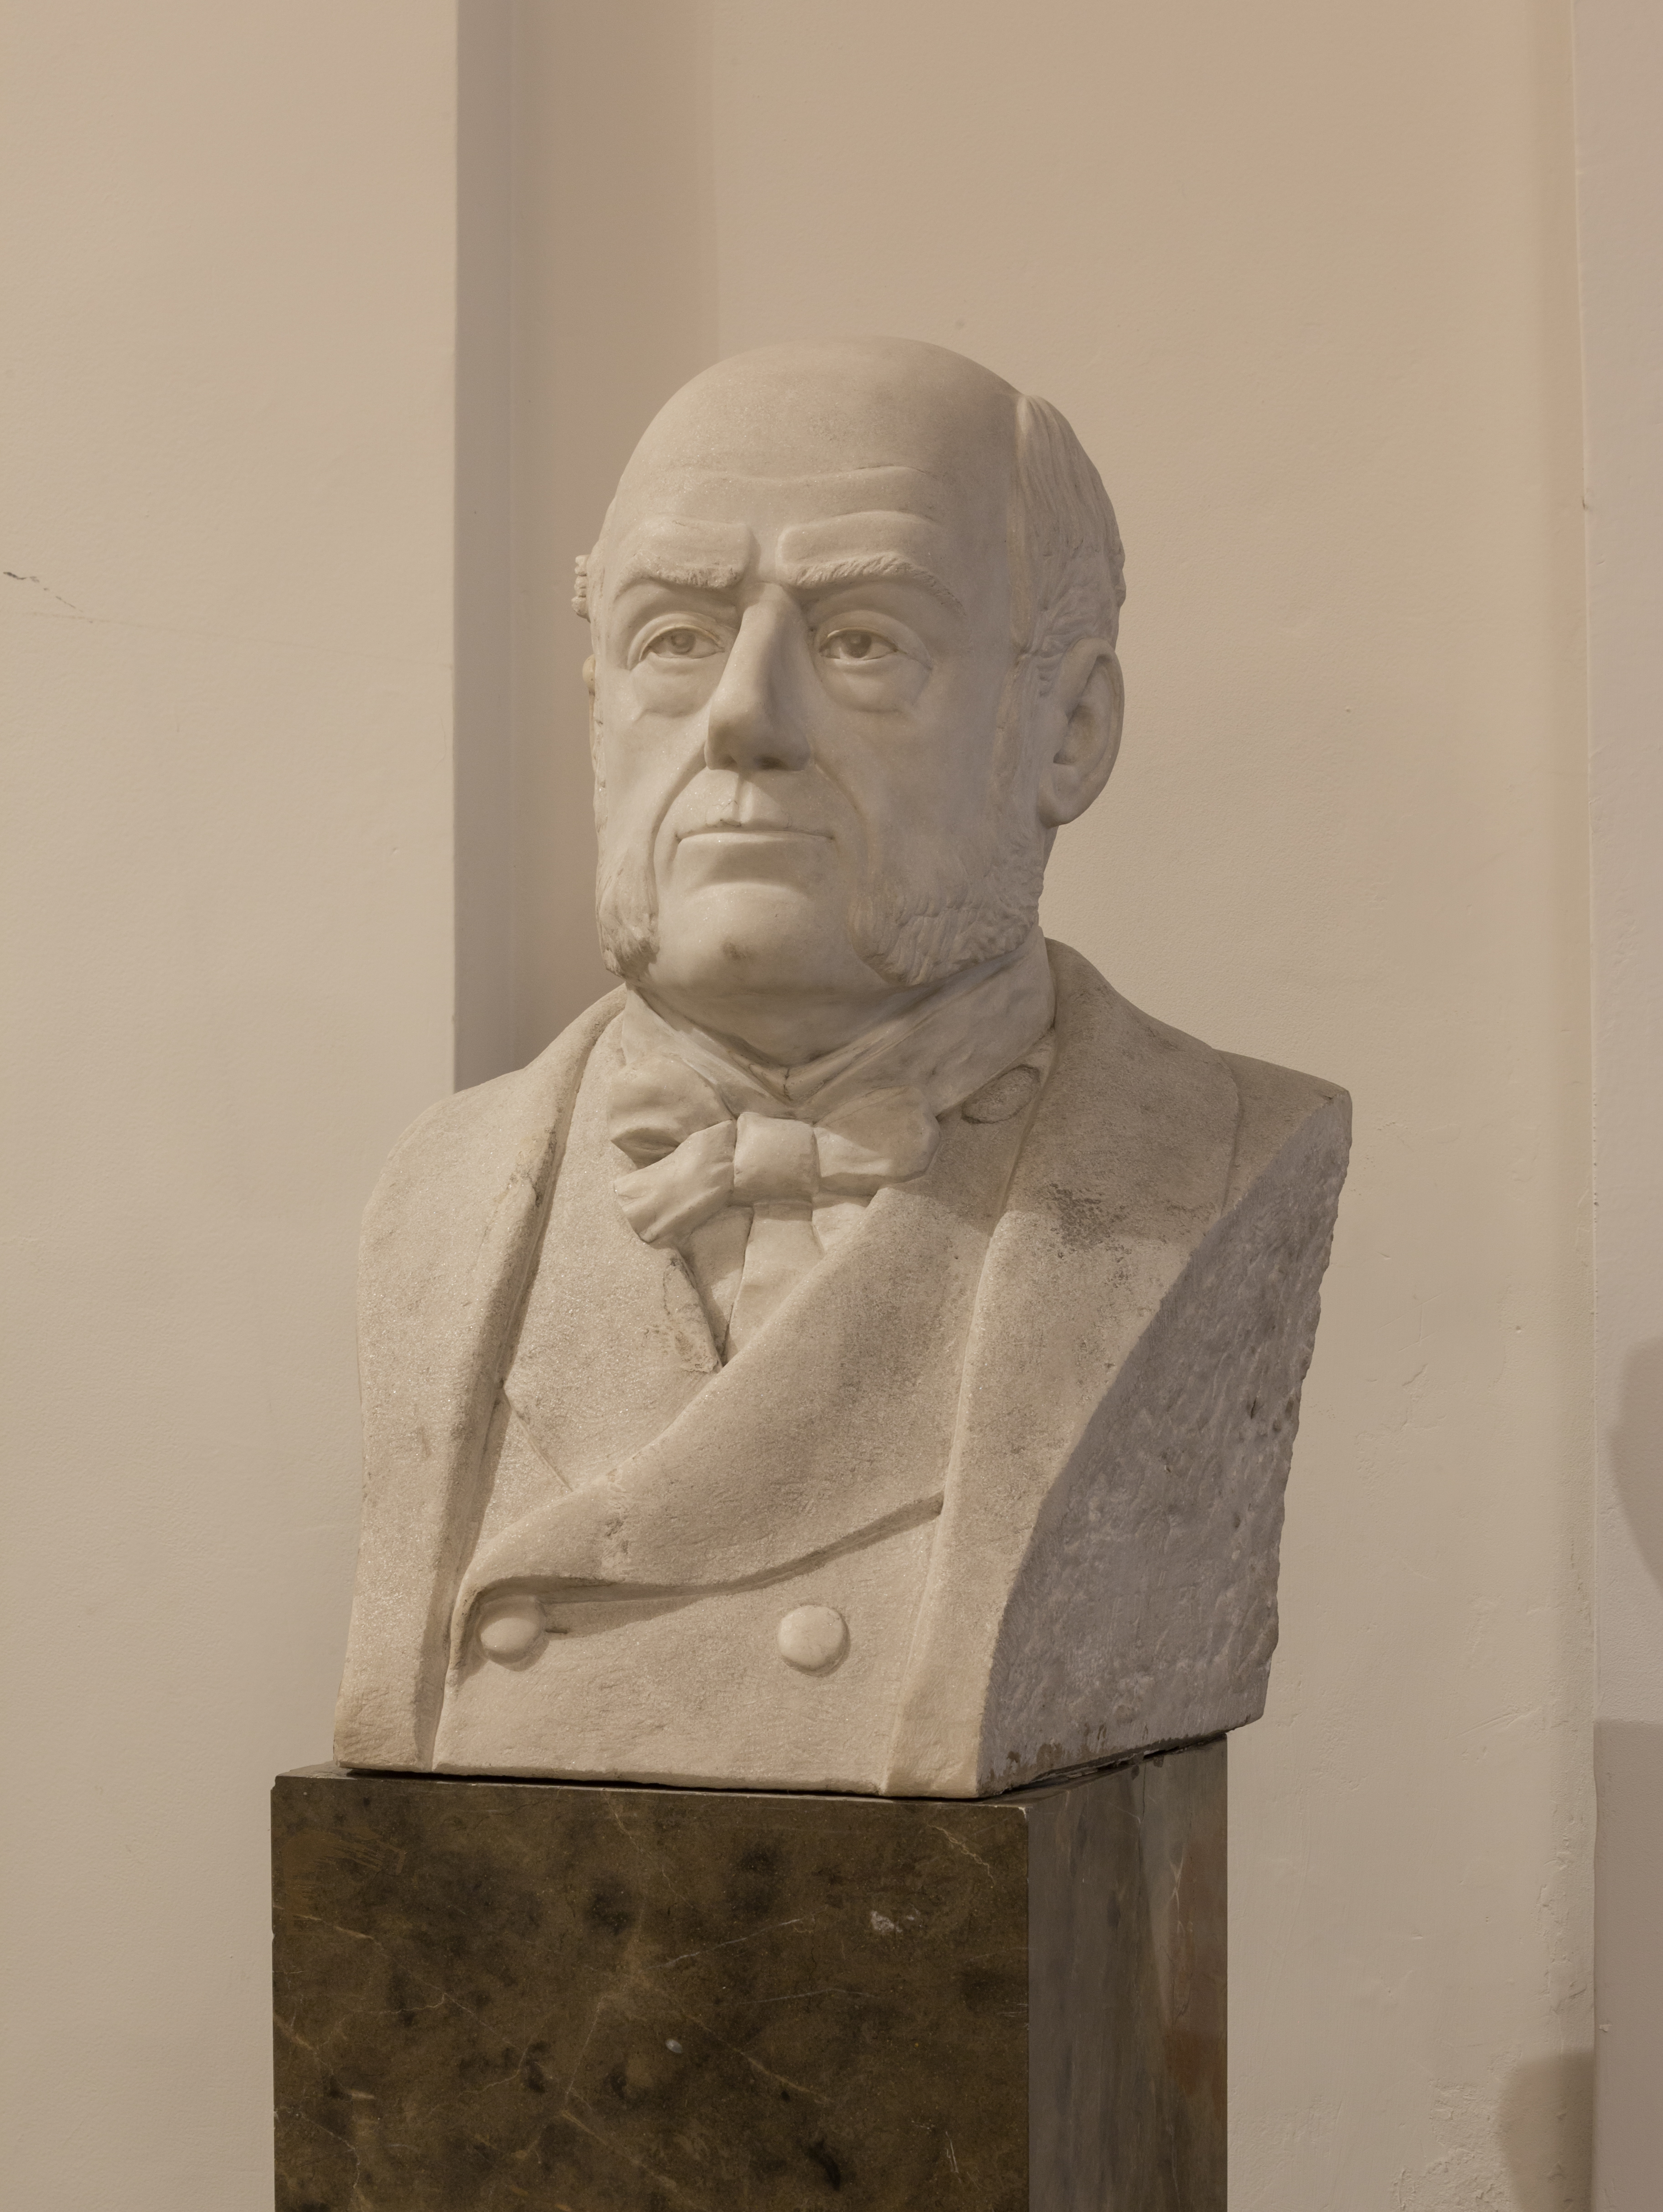 Carl von Rokitansky, Pathologist, bust in the aula of the Academy of Sciencis, Vienna - hu - 8547